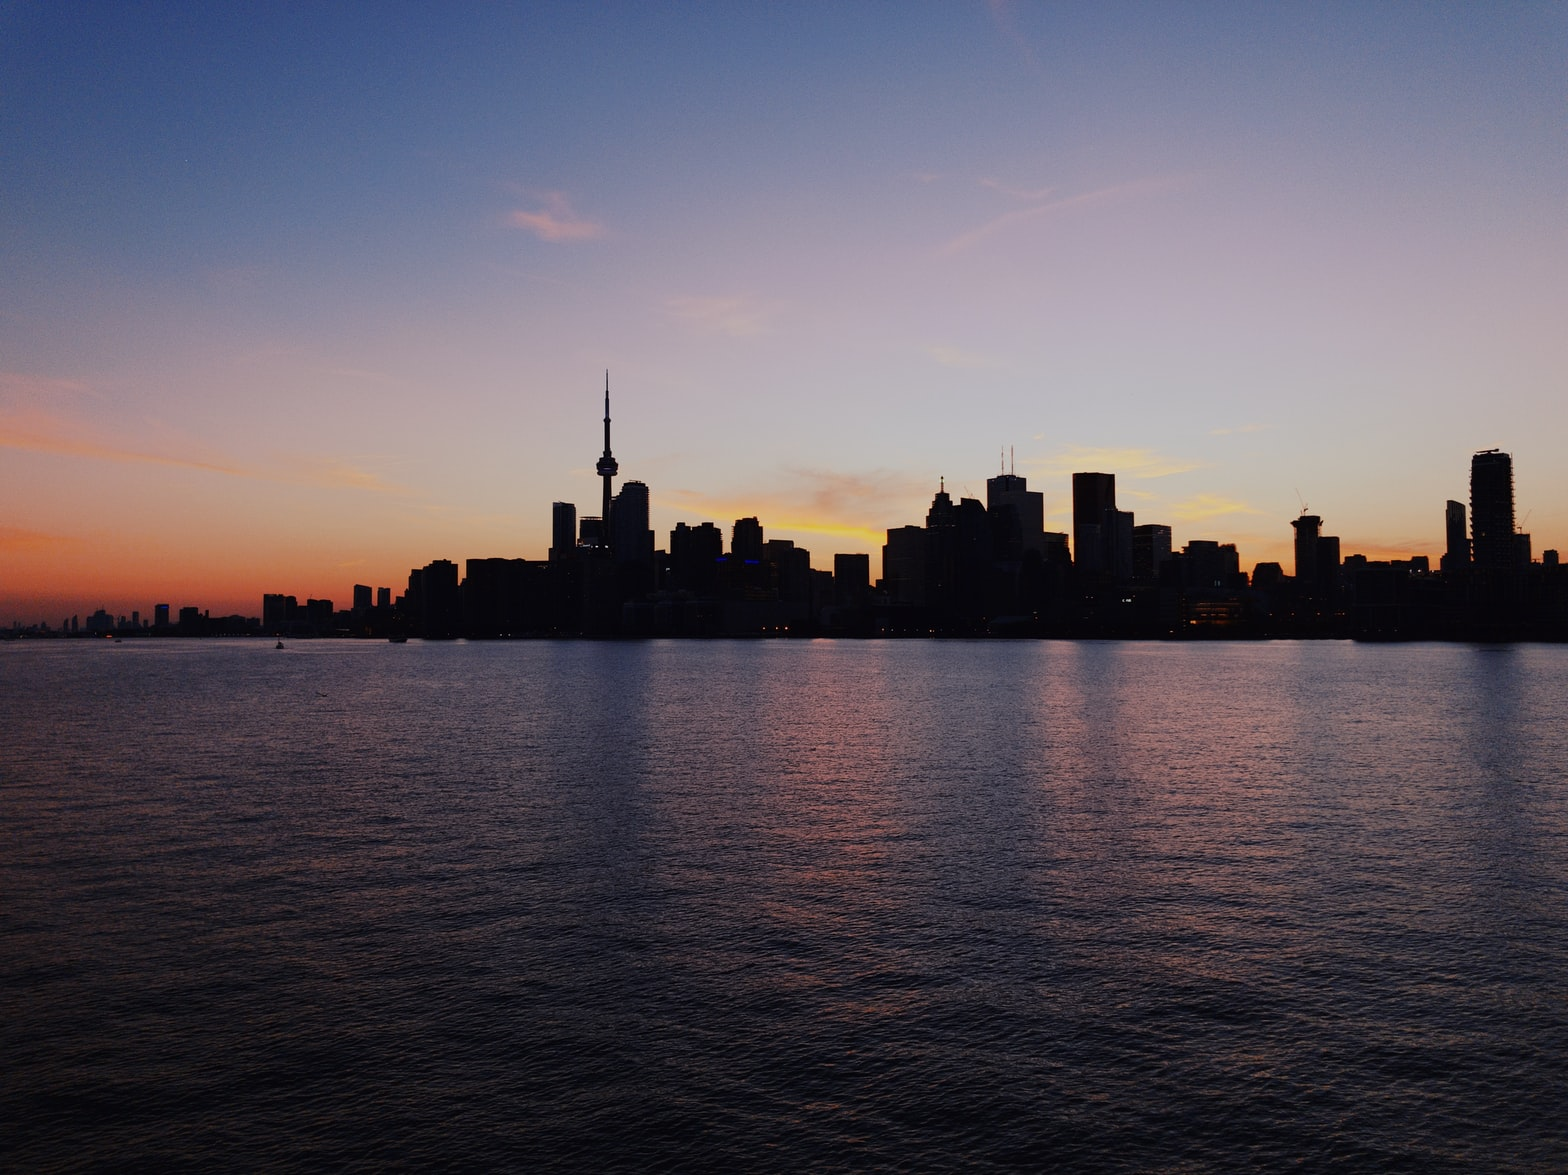 Toronto skyline from the harbor